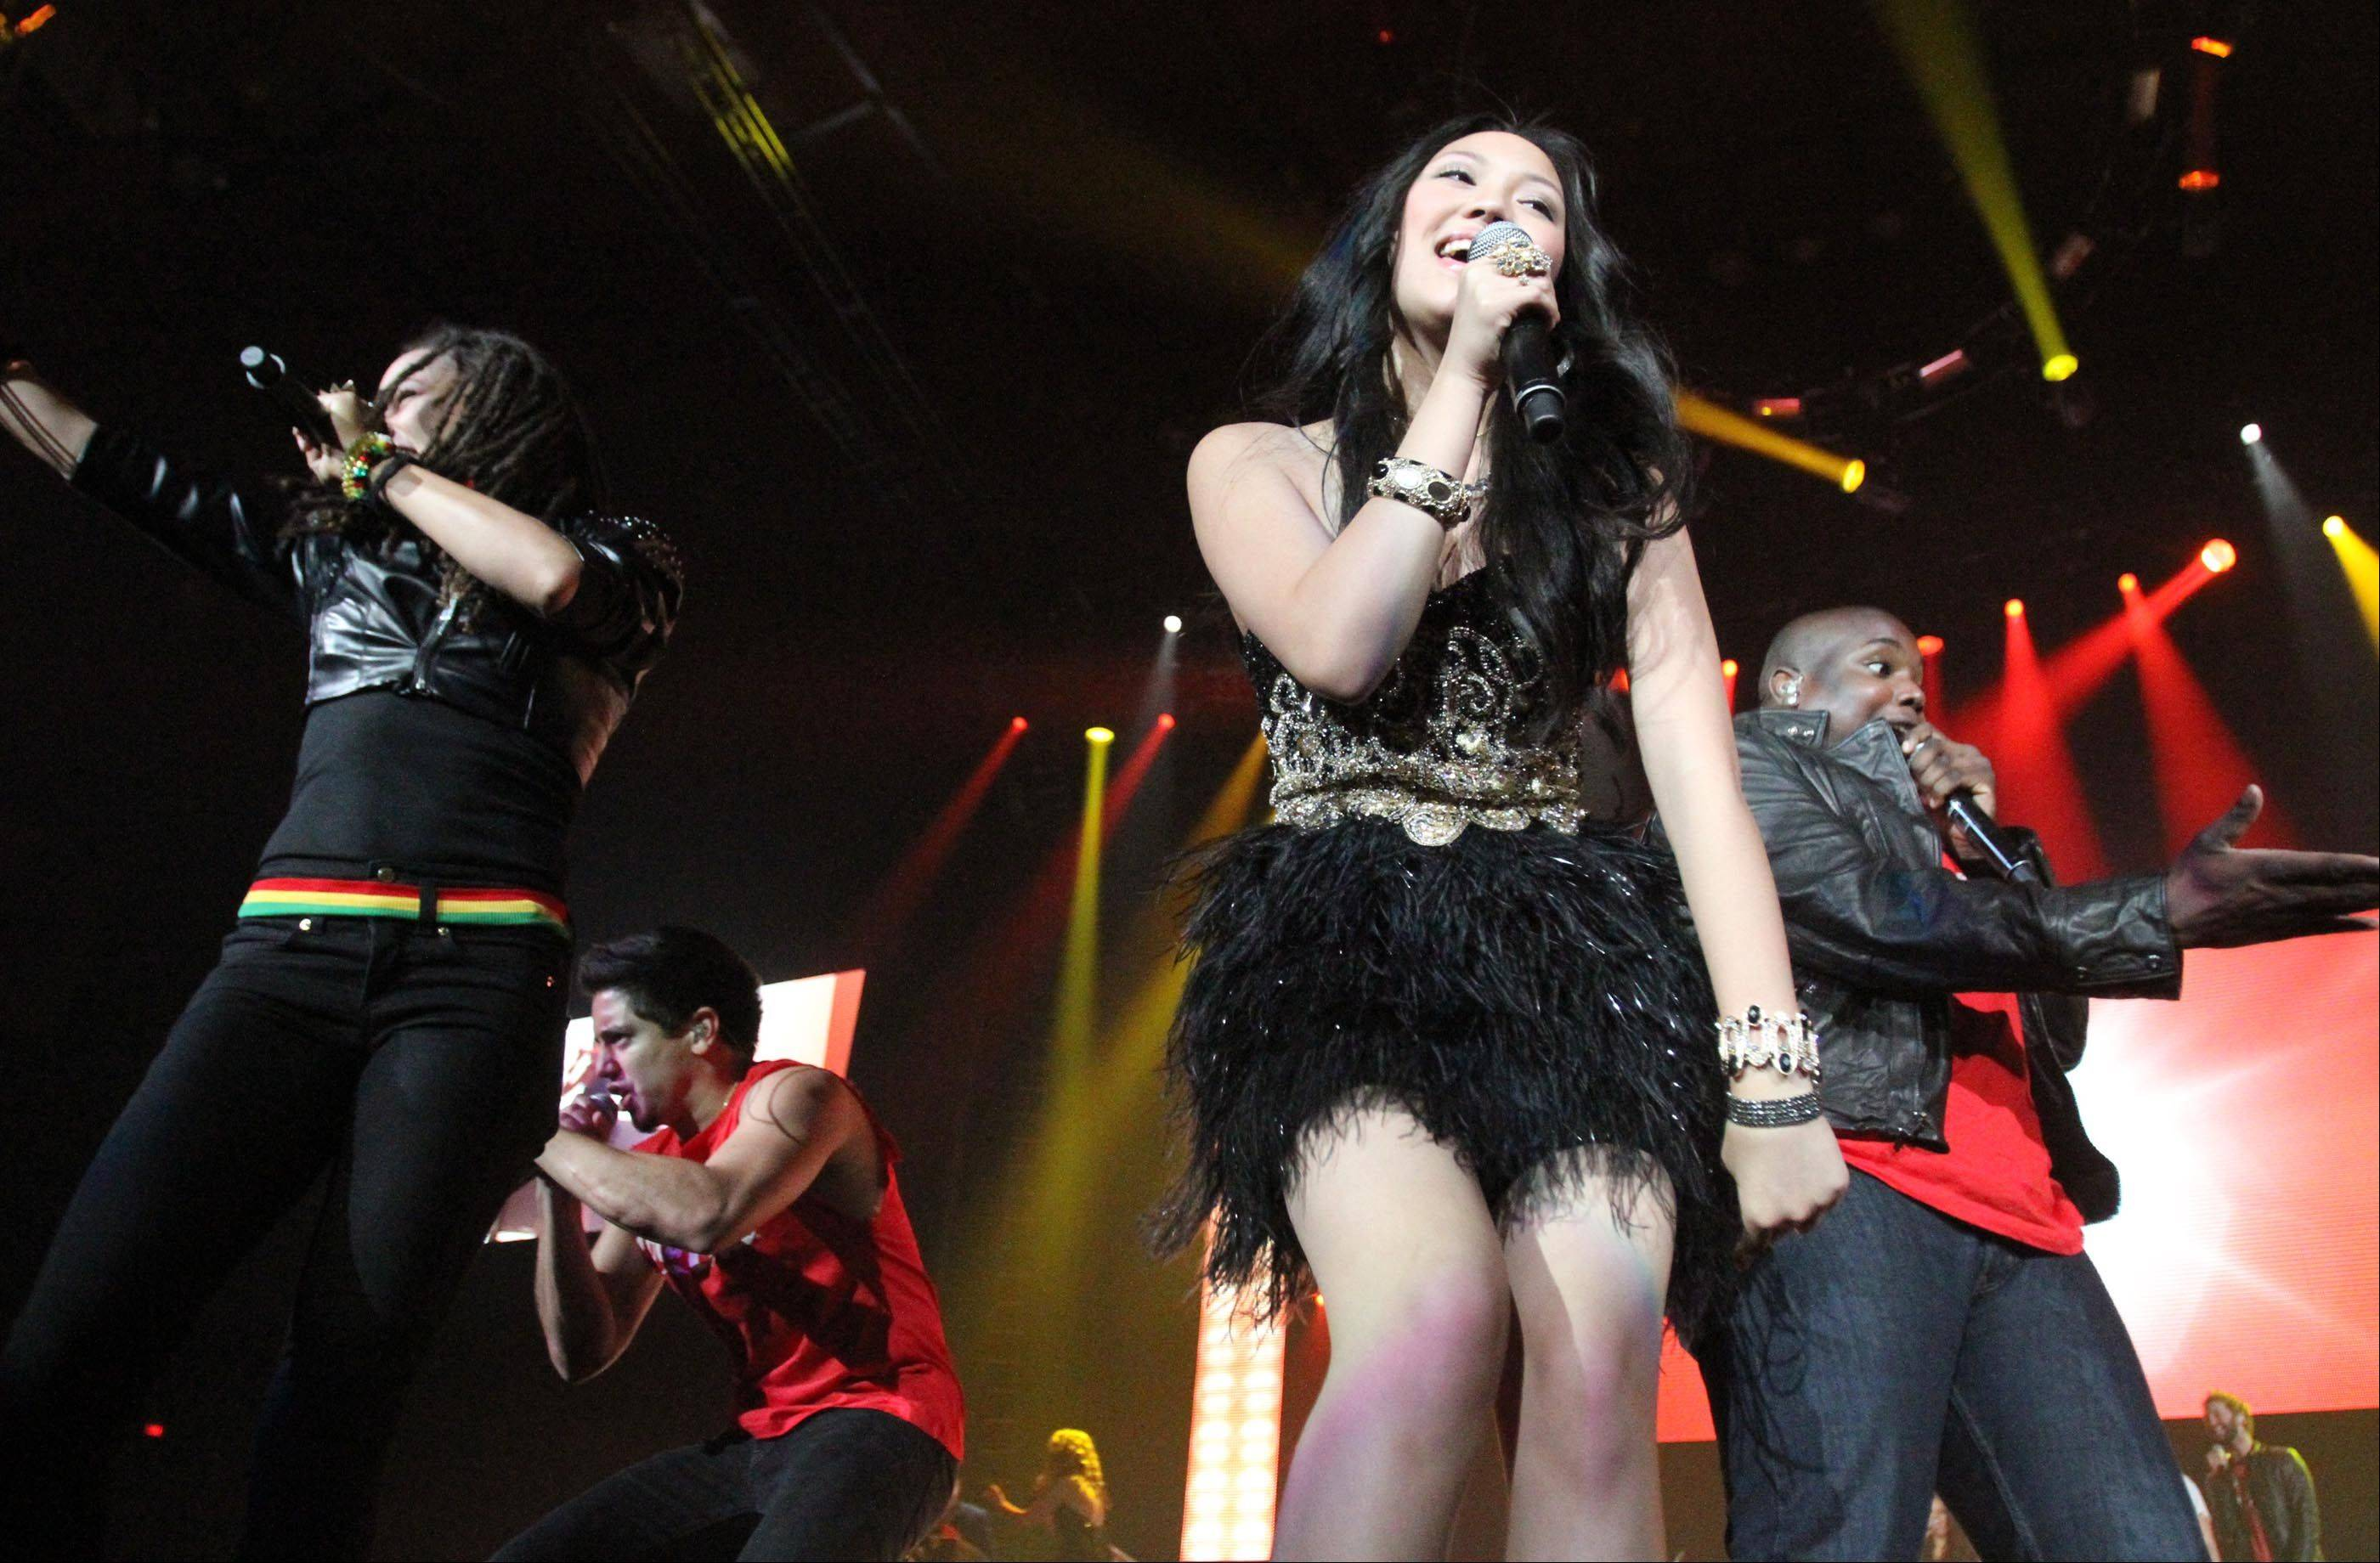 All the American Idol finalists performed for the last song.